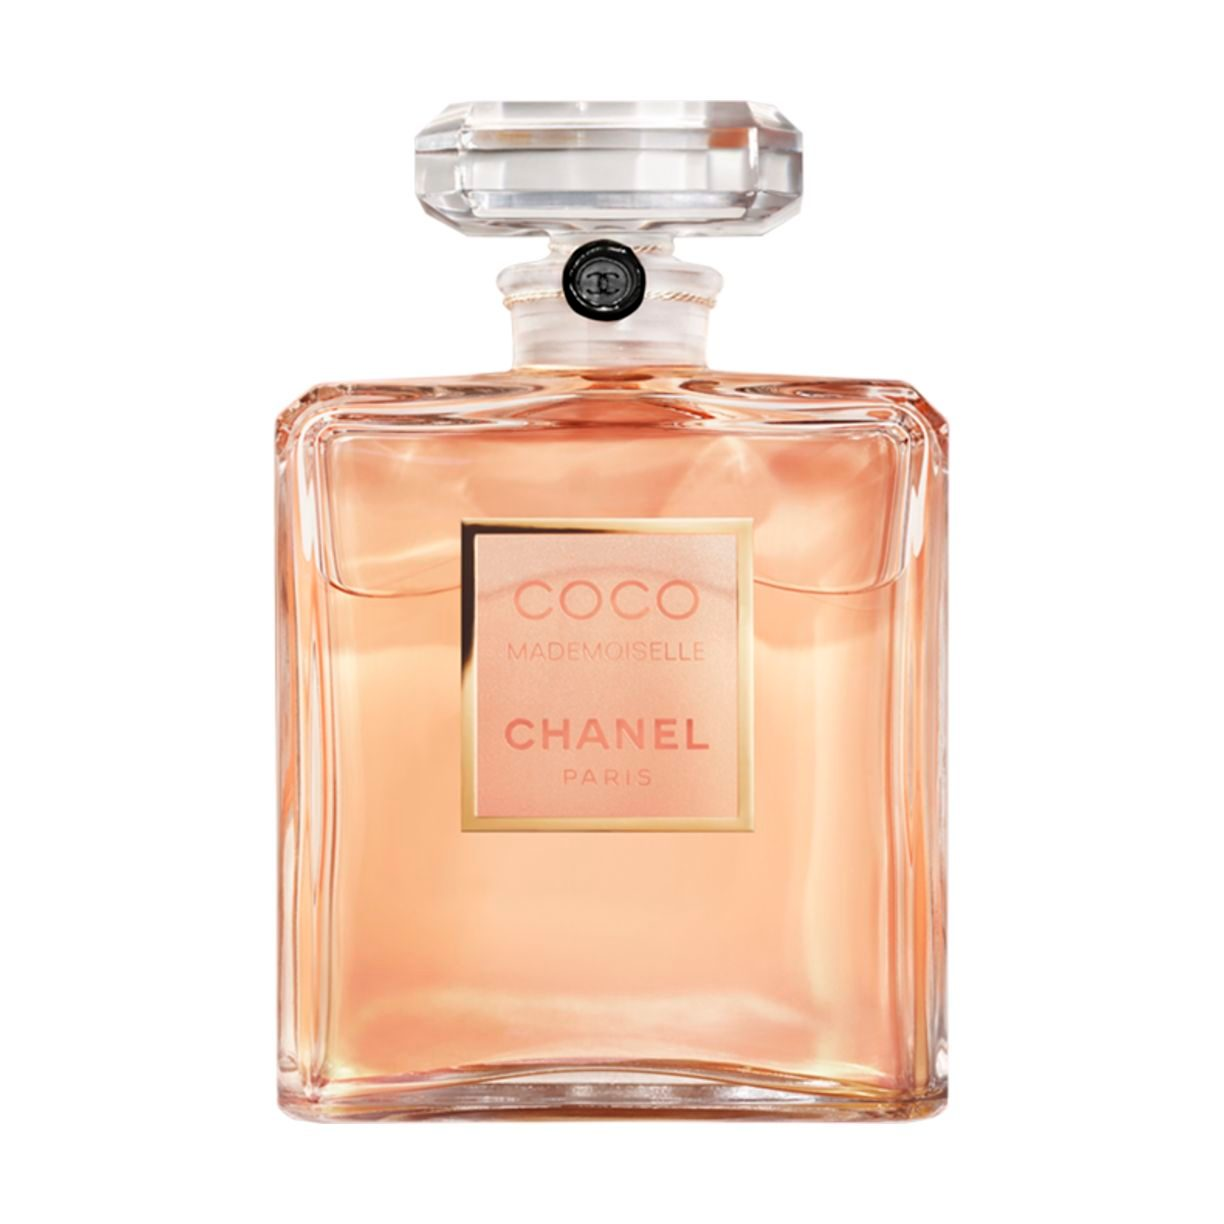 COCO MADEMOISELLE - CHANEL - Official site